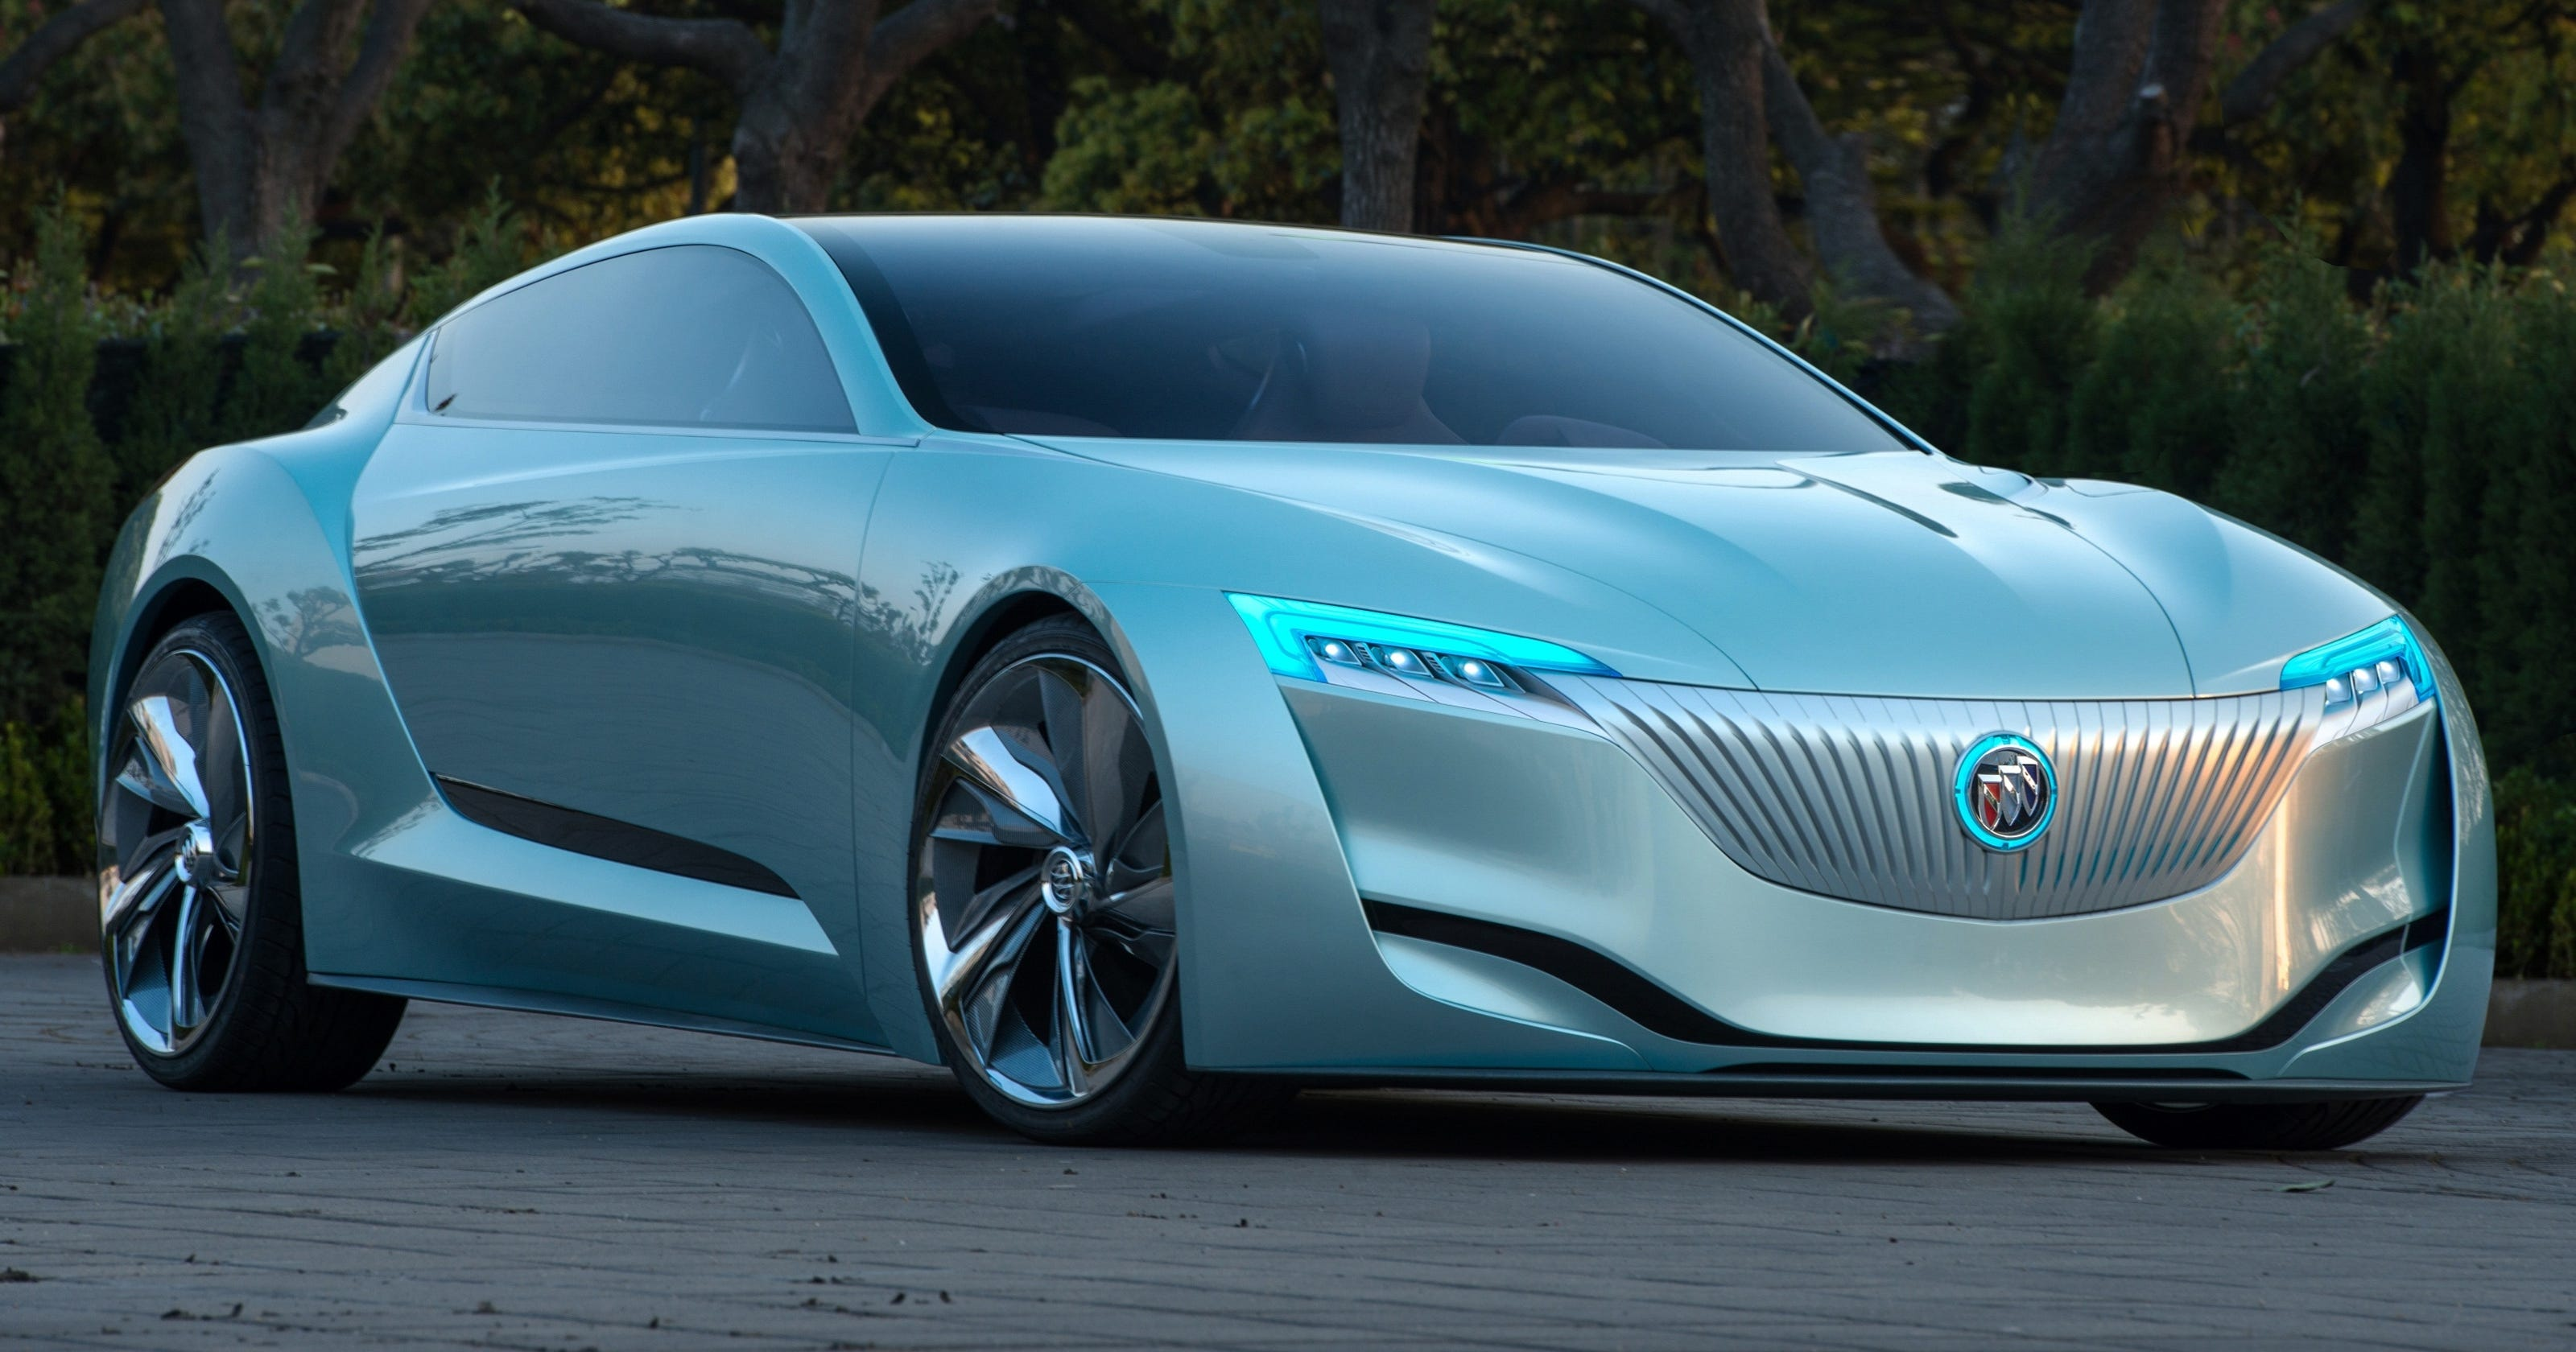 New Buick Cars >> Buick unveils China-designed Riviera concept in Shanghai